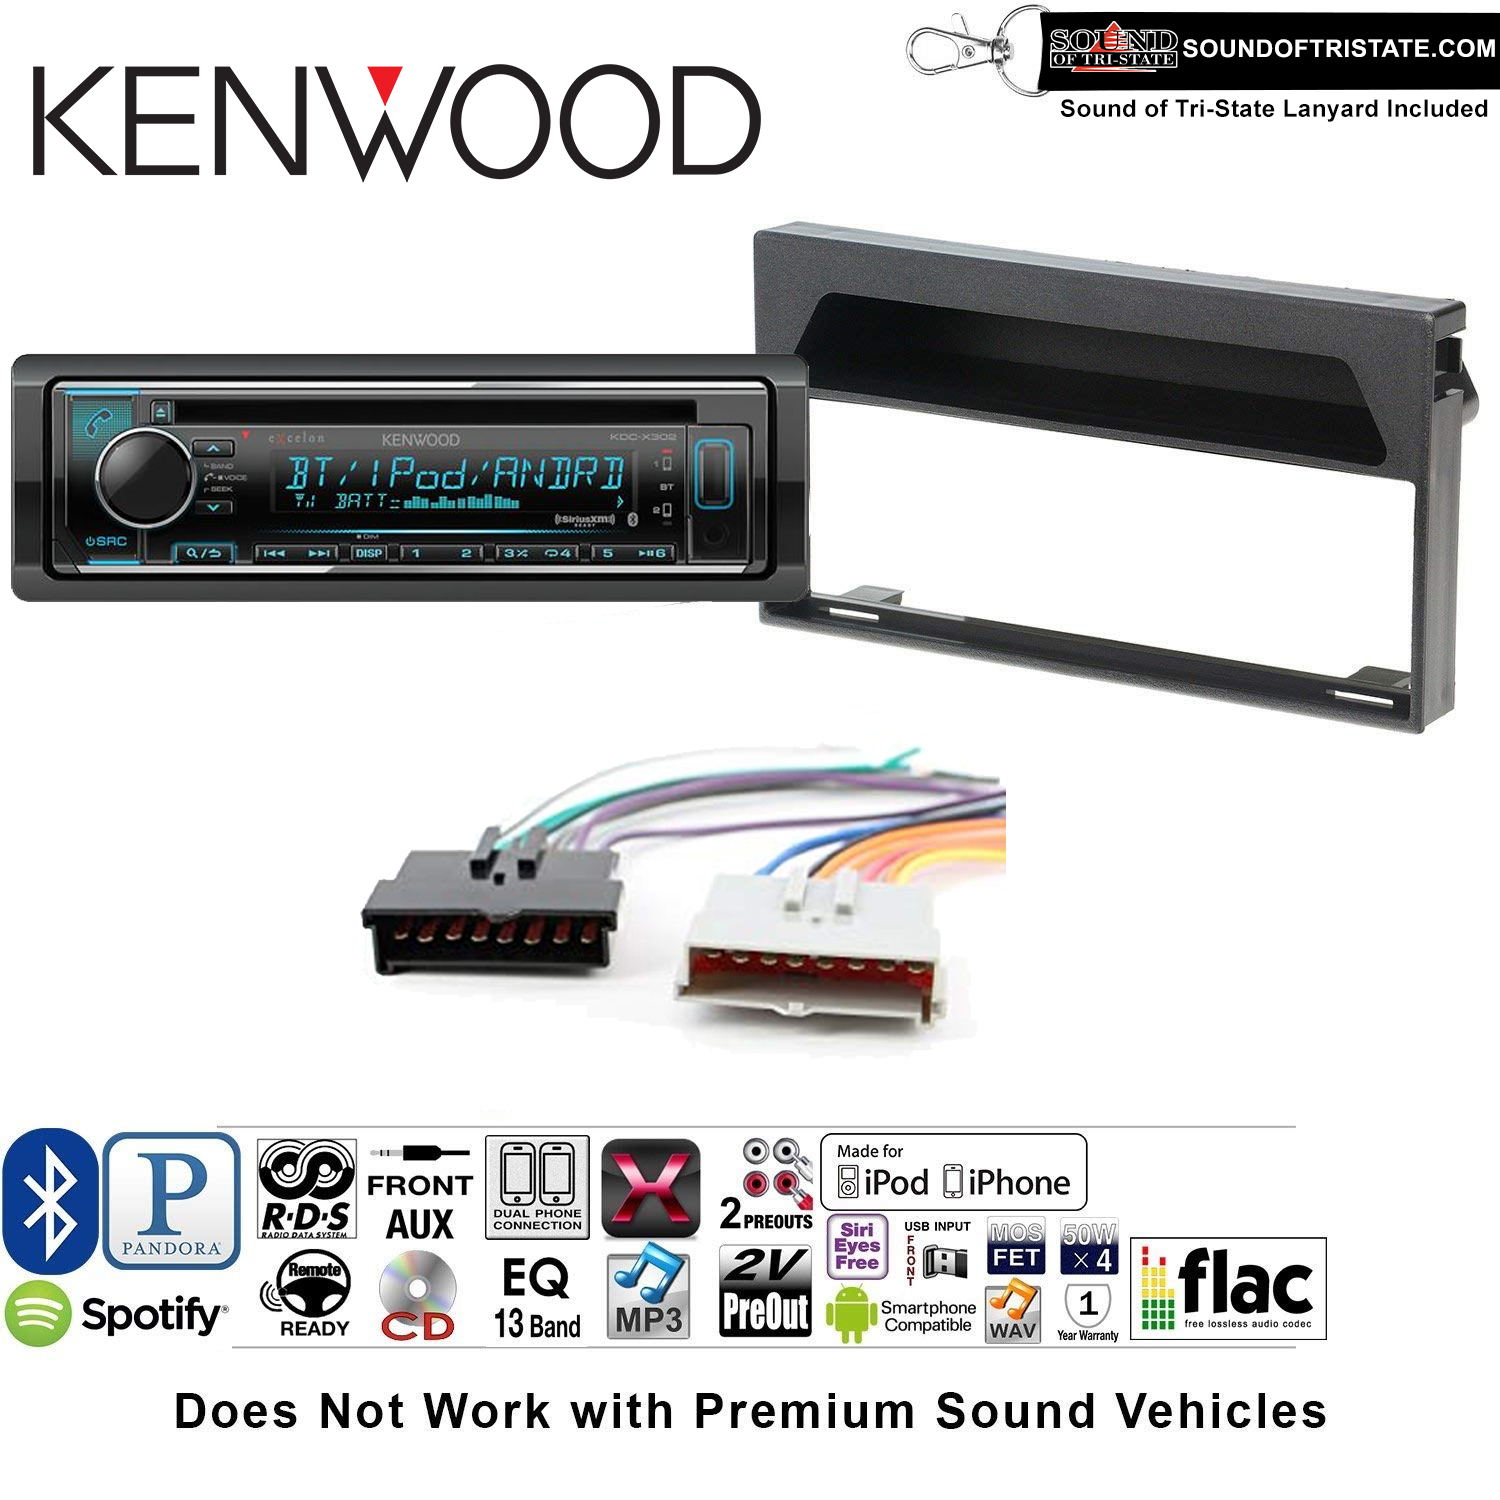 Kenwood KDCX302 Double Din Radio Install Kit with Bluetooth, CD Player, USB/AUX Fits 1997-1998 F-150 Without Premium Sound and a SOTS lanyard included